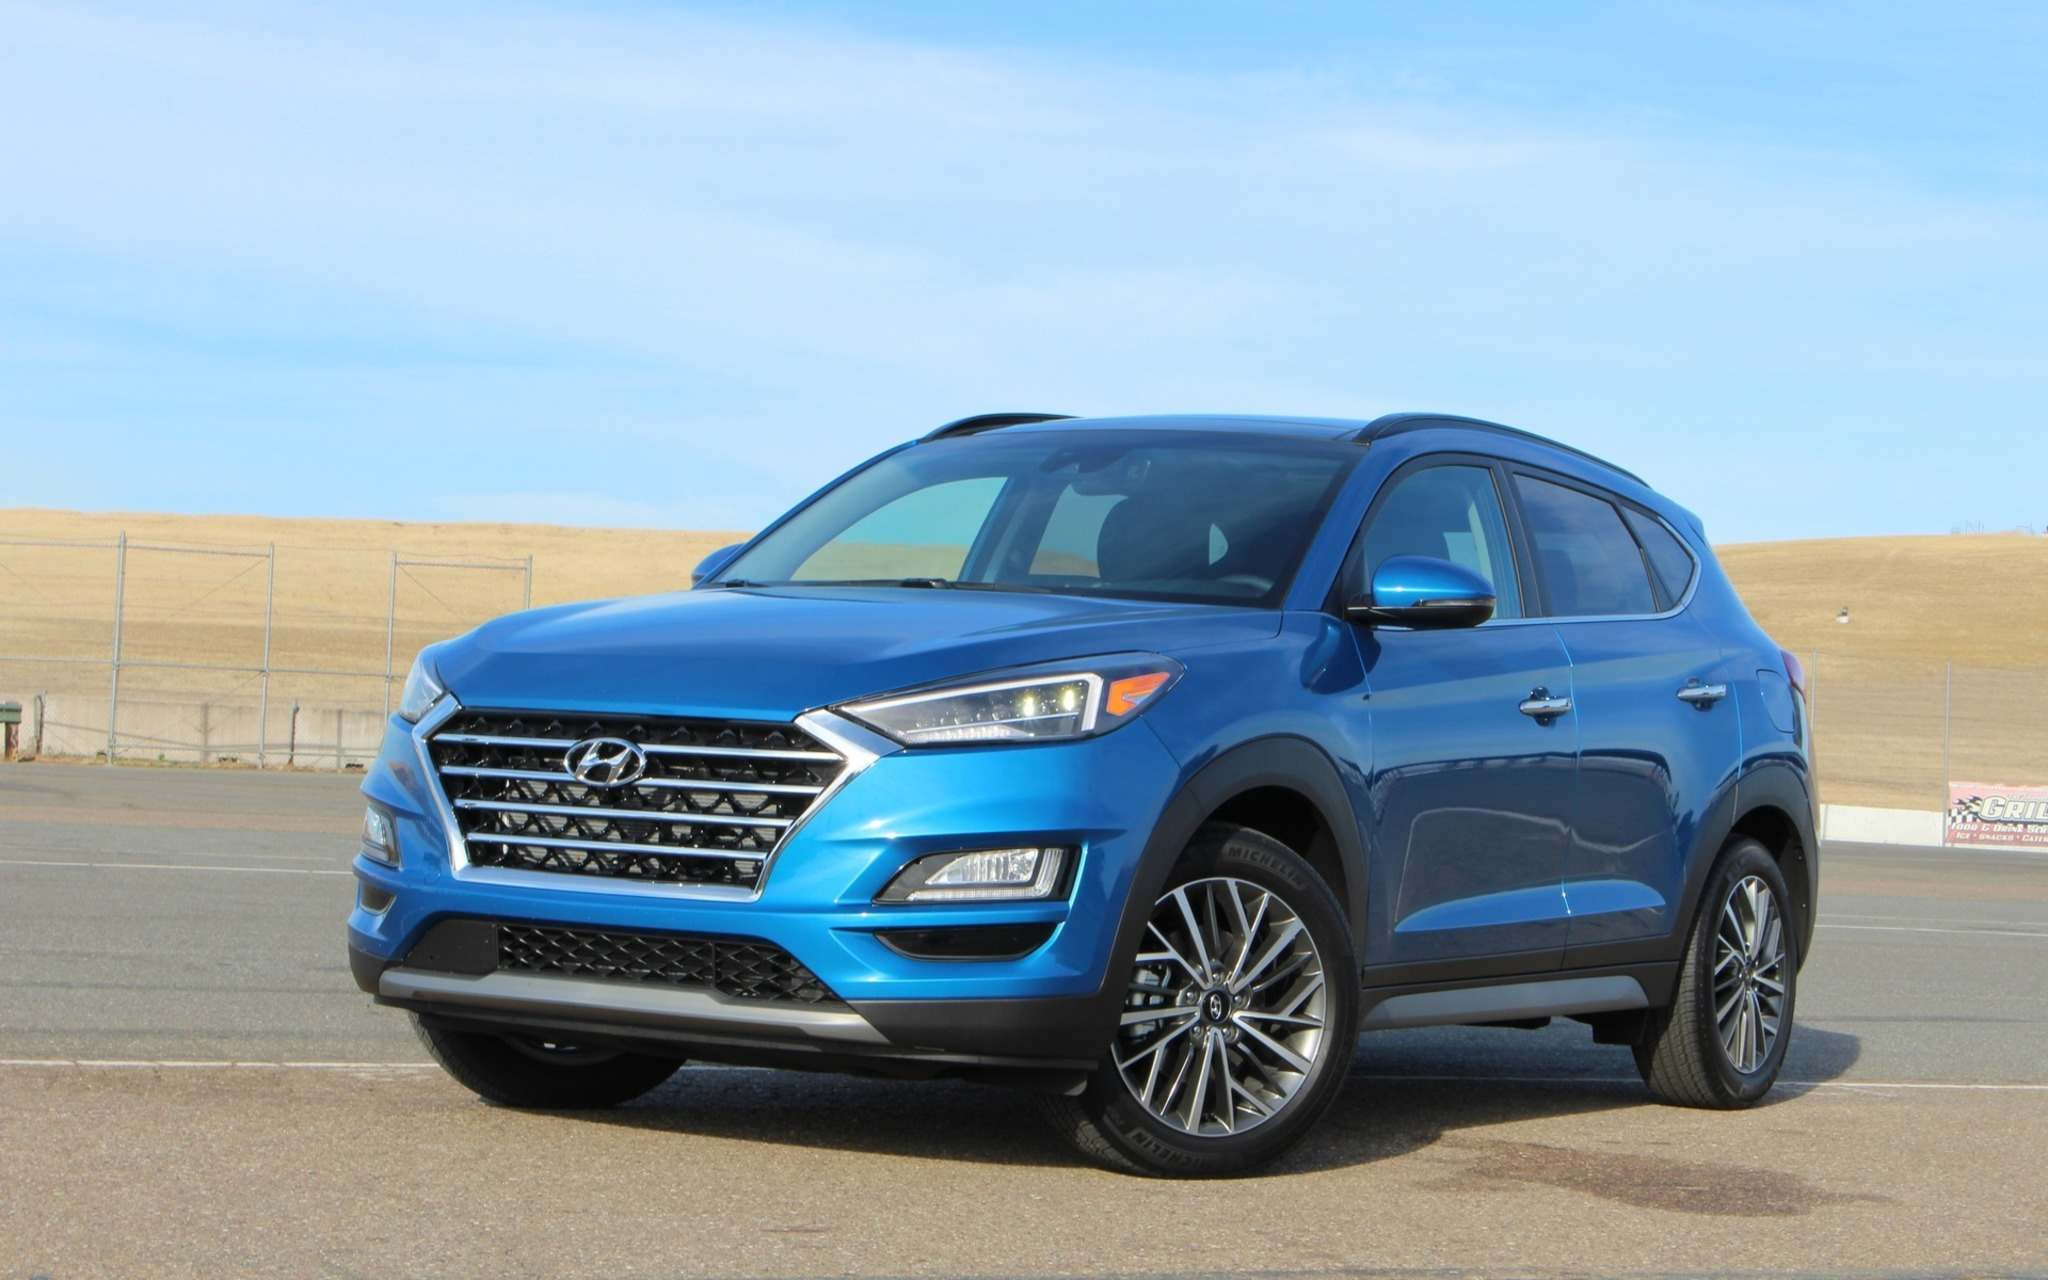 Michel Deslauriers / LC MediaThe latest generation of the Hyundai Tucson was released for the 2016 model year in Canada. It has just received a host of improvements, in addition to some mild cosmetic changes, in order to remain competitive in the compact SUV market.